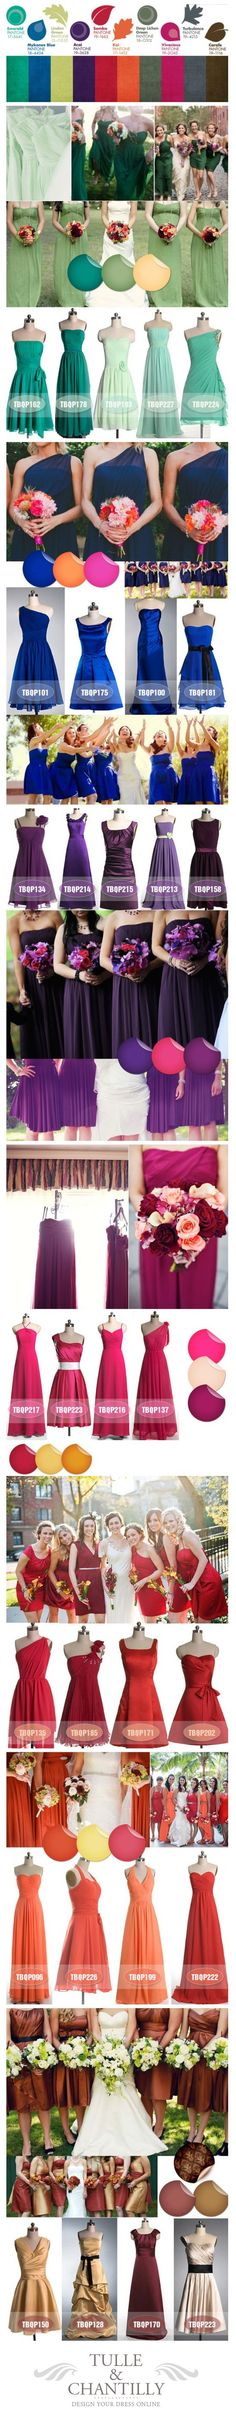 Purple, blue, green, red, orange bridesmaid dresses color ideas for fall wedding.